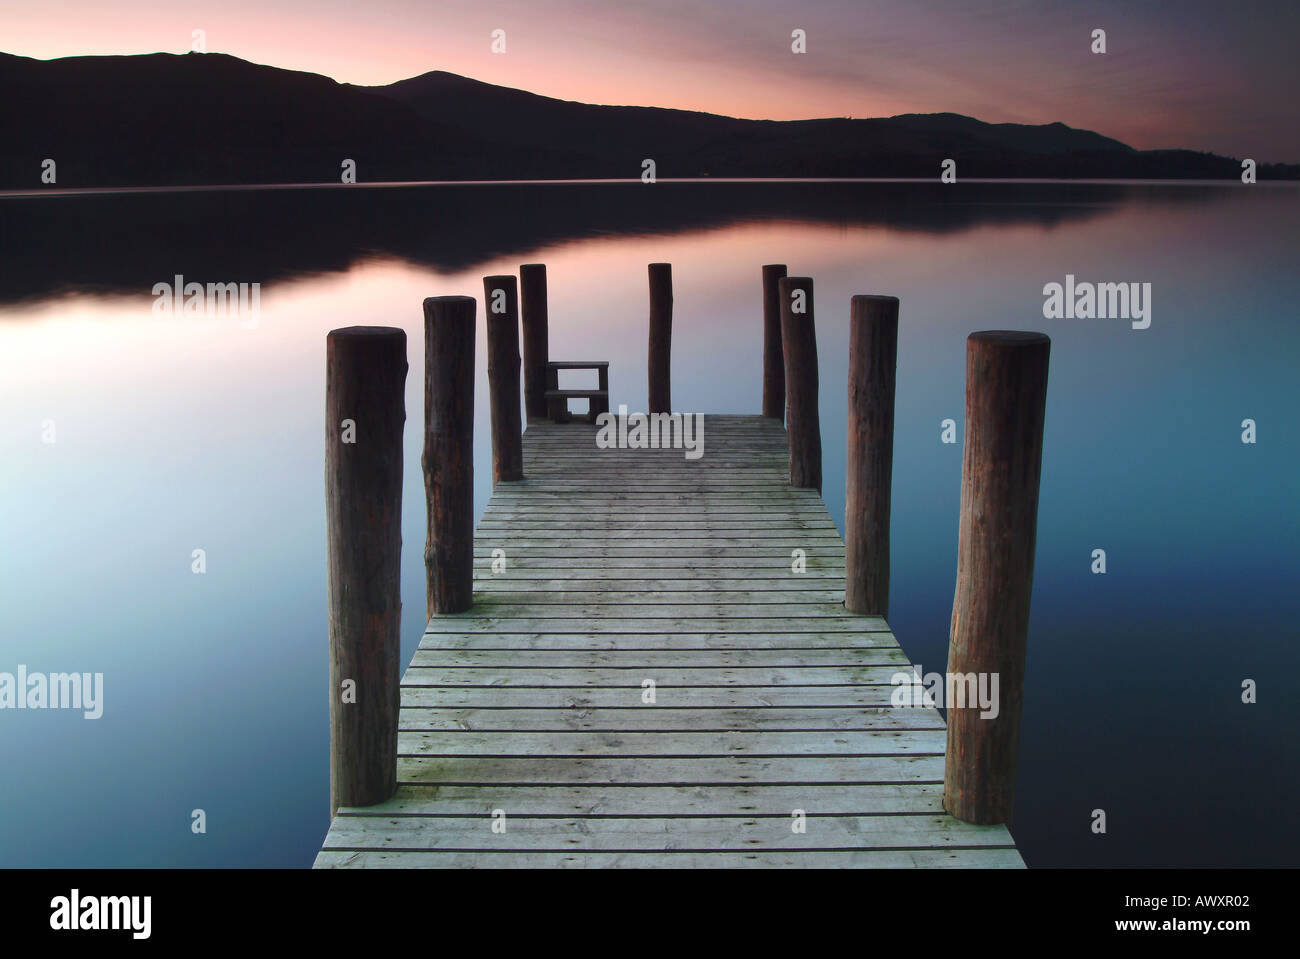 Old Jetty on Derwent Water at Evening Twilight, Near Keswick, Lake District, Cumbria, UK - Stock Image